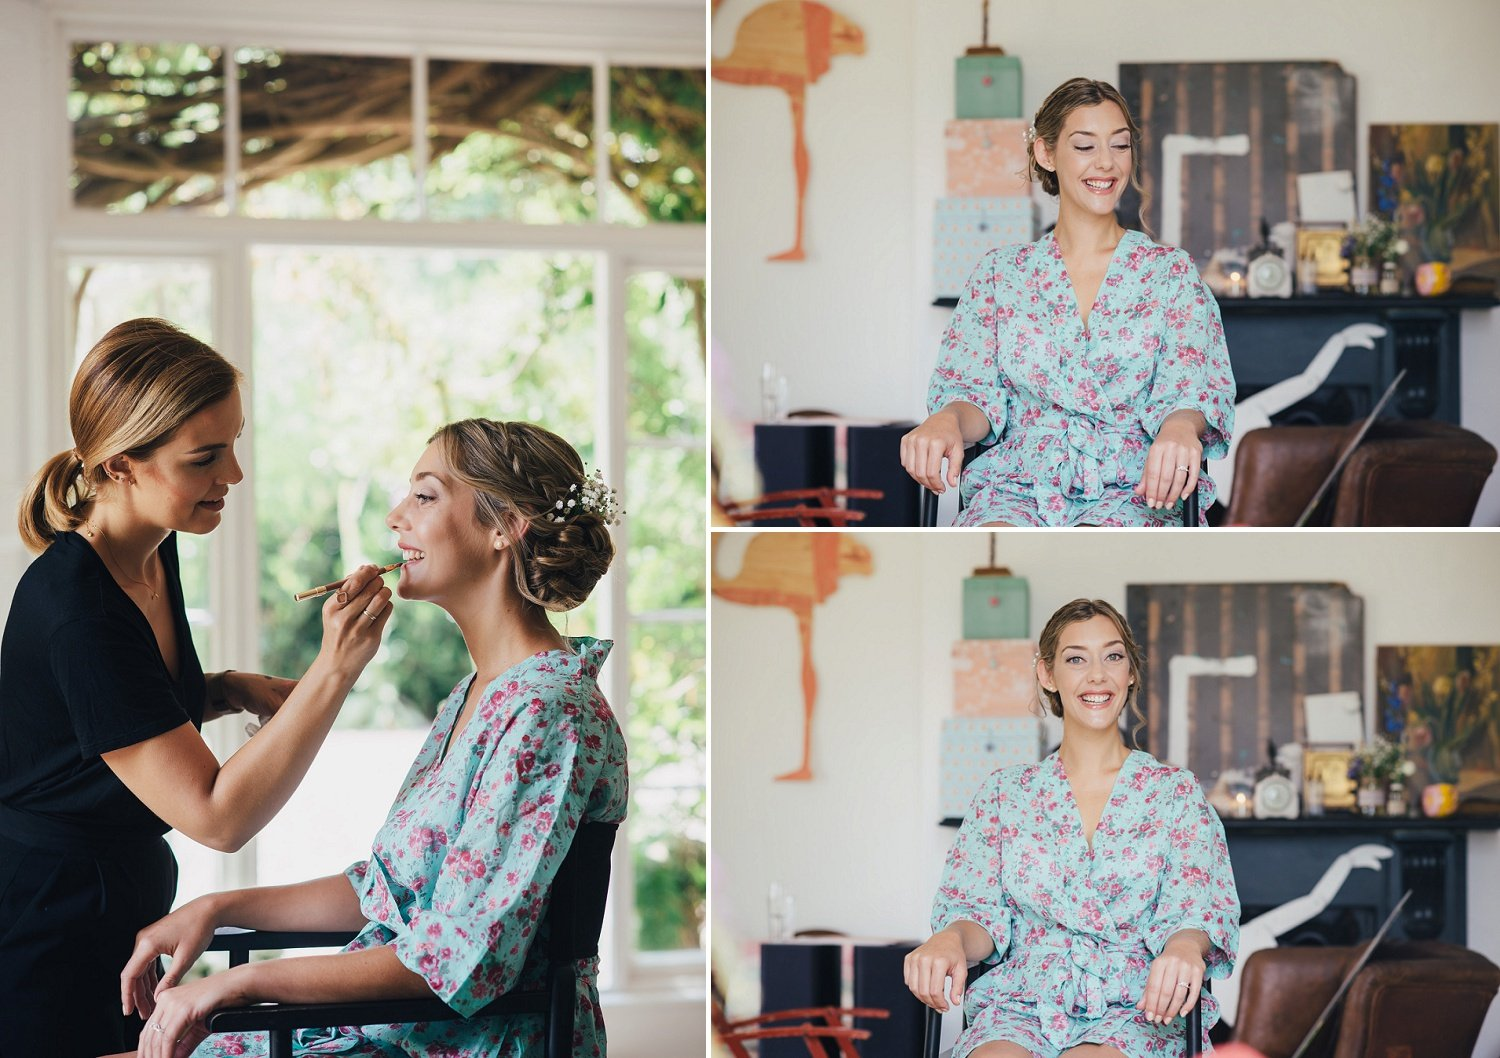 Natural look applied by makeup artist Sasha Brown, booked for a bride's wedding